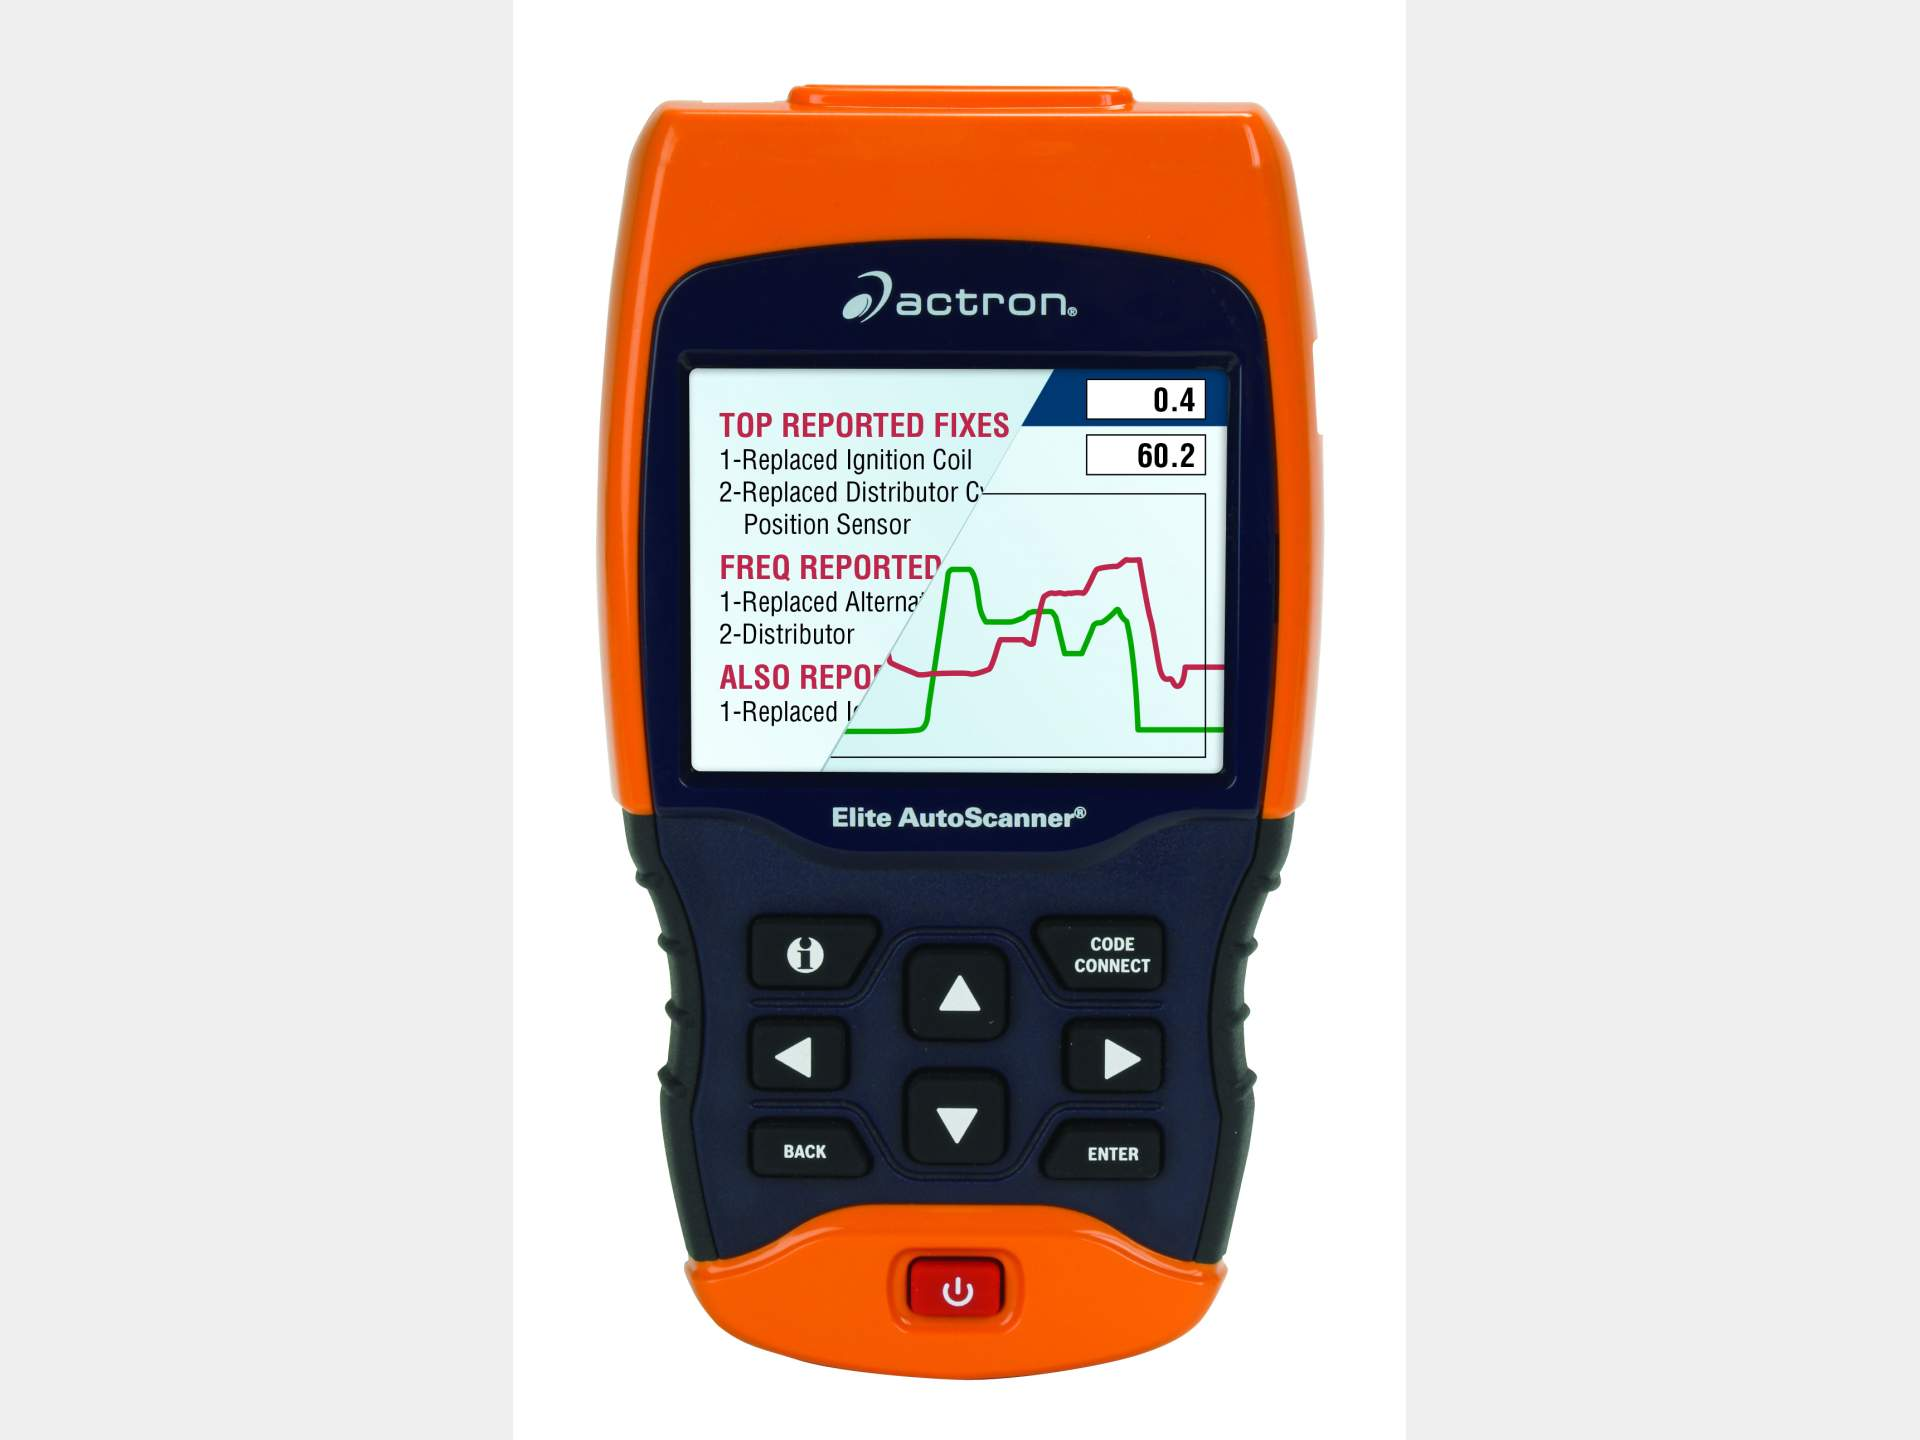 actron cp9580 auto scanner manual product user guide instruction u2022 rh testdpc co Actron CP9580 Will Not Scan ABS Actron Autoscanner CP9580 Manual